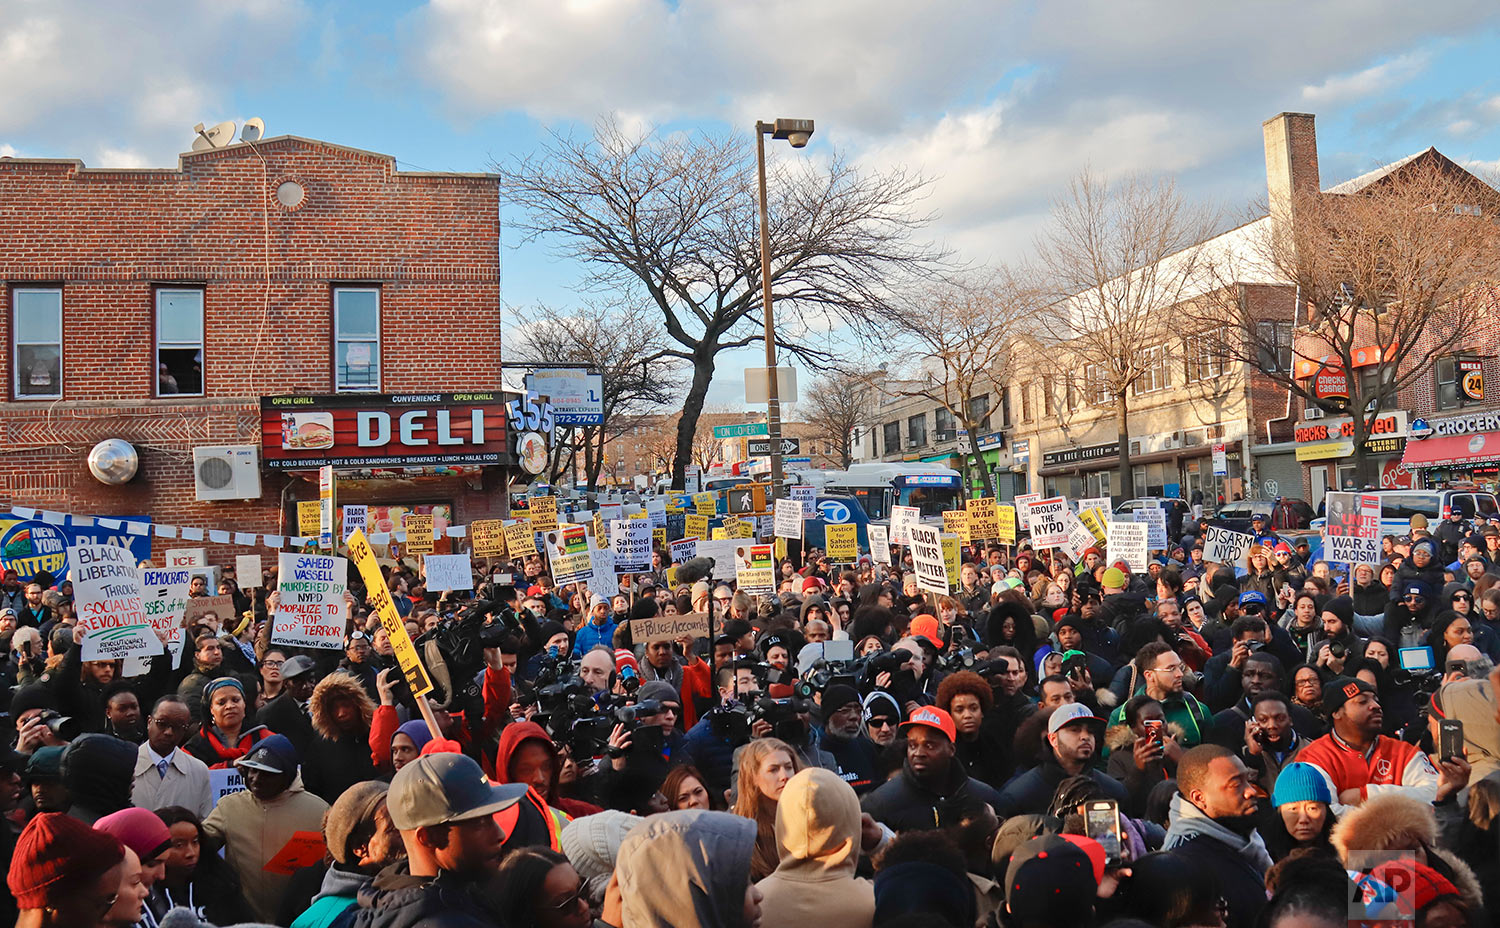 Hundreds rally for a march to the 71st Precinct on Empire Boulevard, Thursday, April 5, 2018, in the Crown Heights neighborhood of Brooklyn, in New York, to protest the fatal police shooting of Saheed Vassell, a 34-year-old welder and father of a teenage son who was fatally shot by New York Police Department officers a day earlier. (AP Photo/Bebeto Matthews)